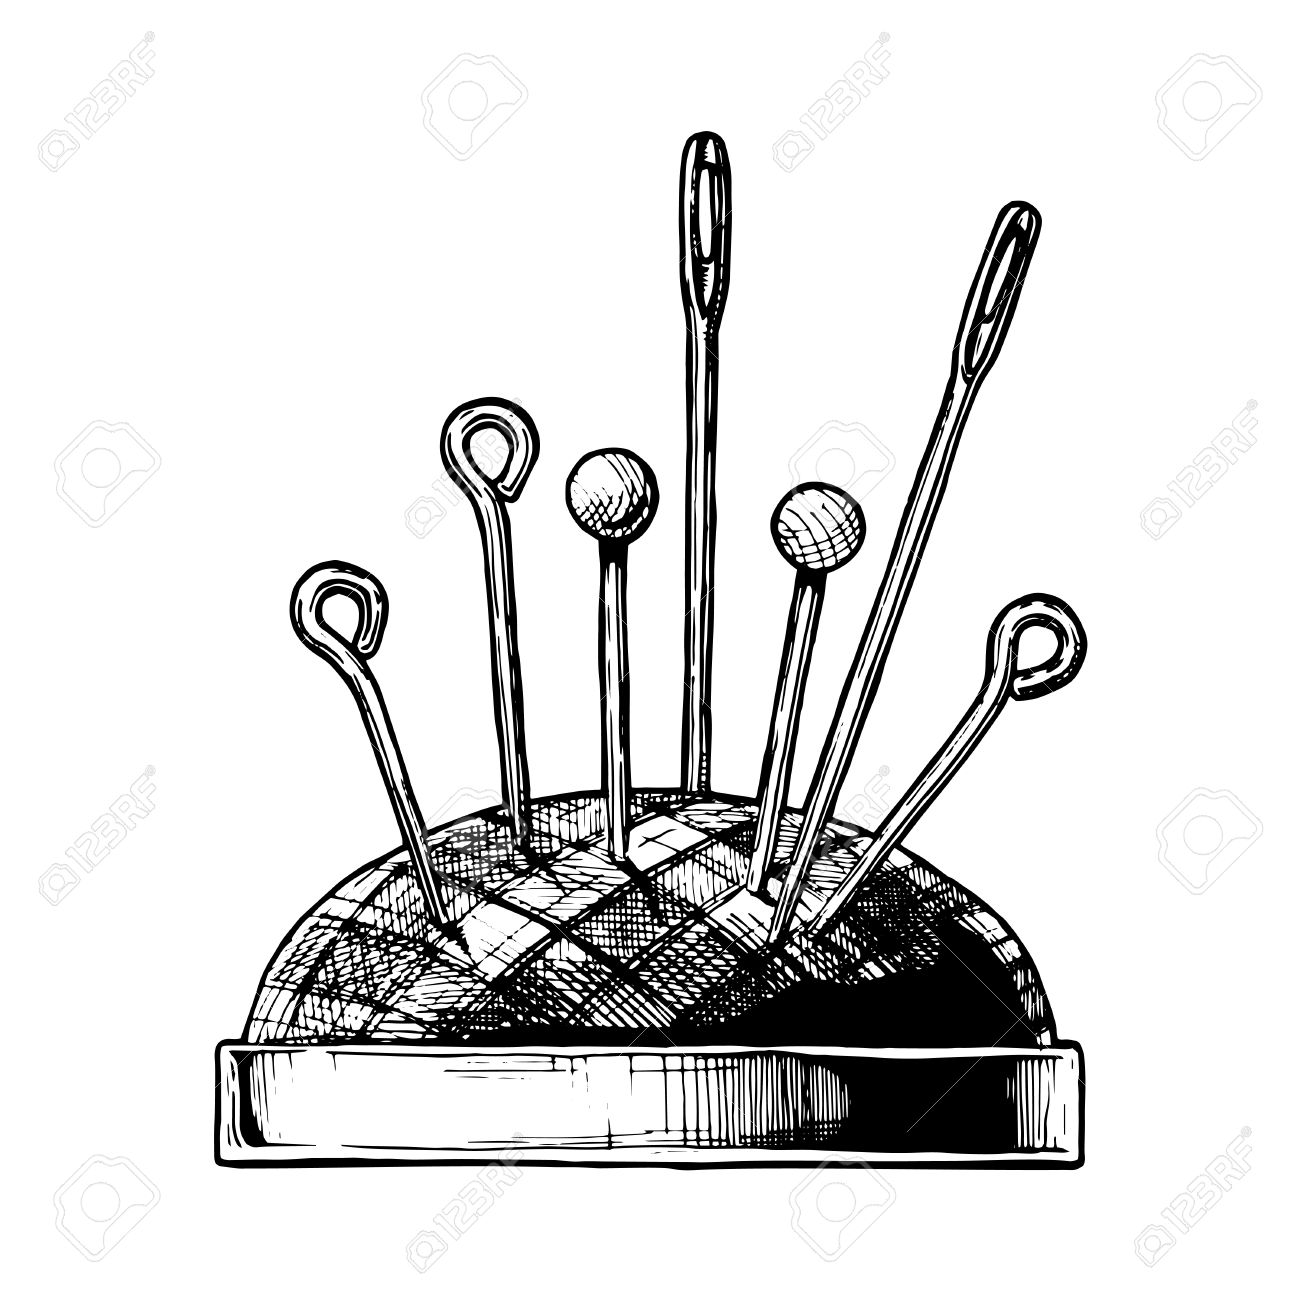 1300x1300 Vector Black And White Hand Drawn Illustration Of Pin Cushion